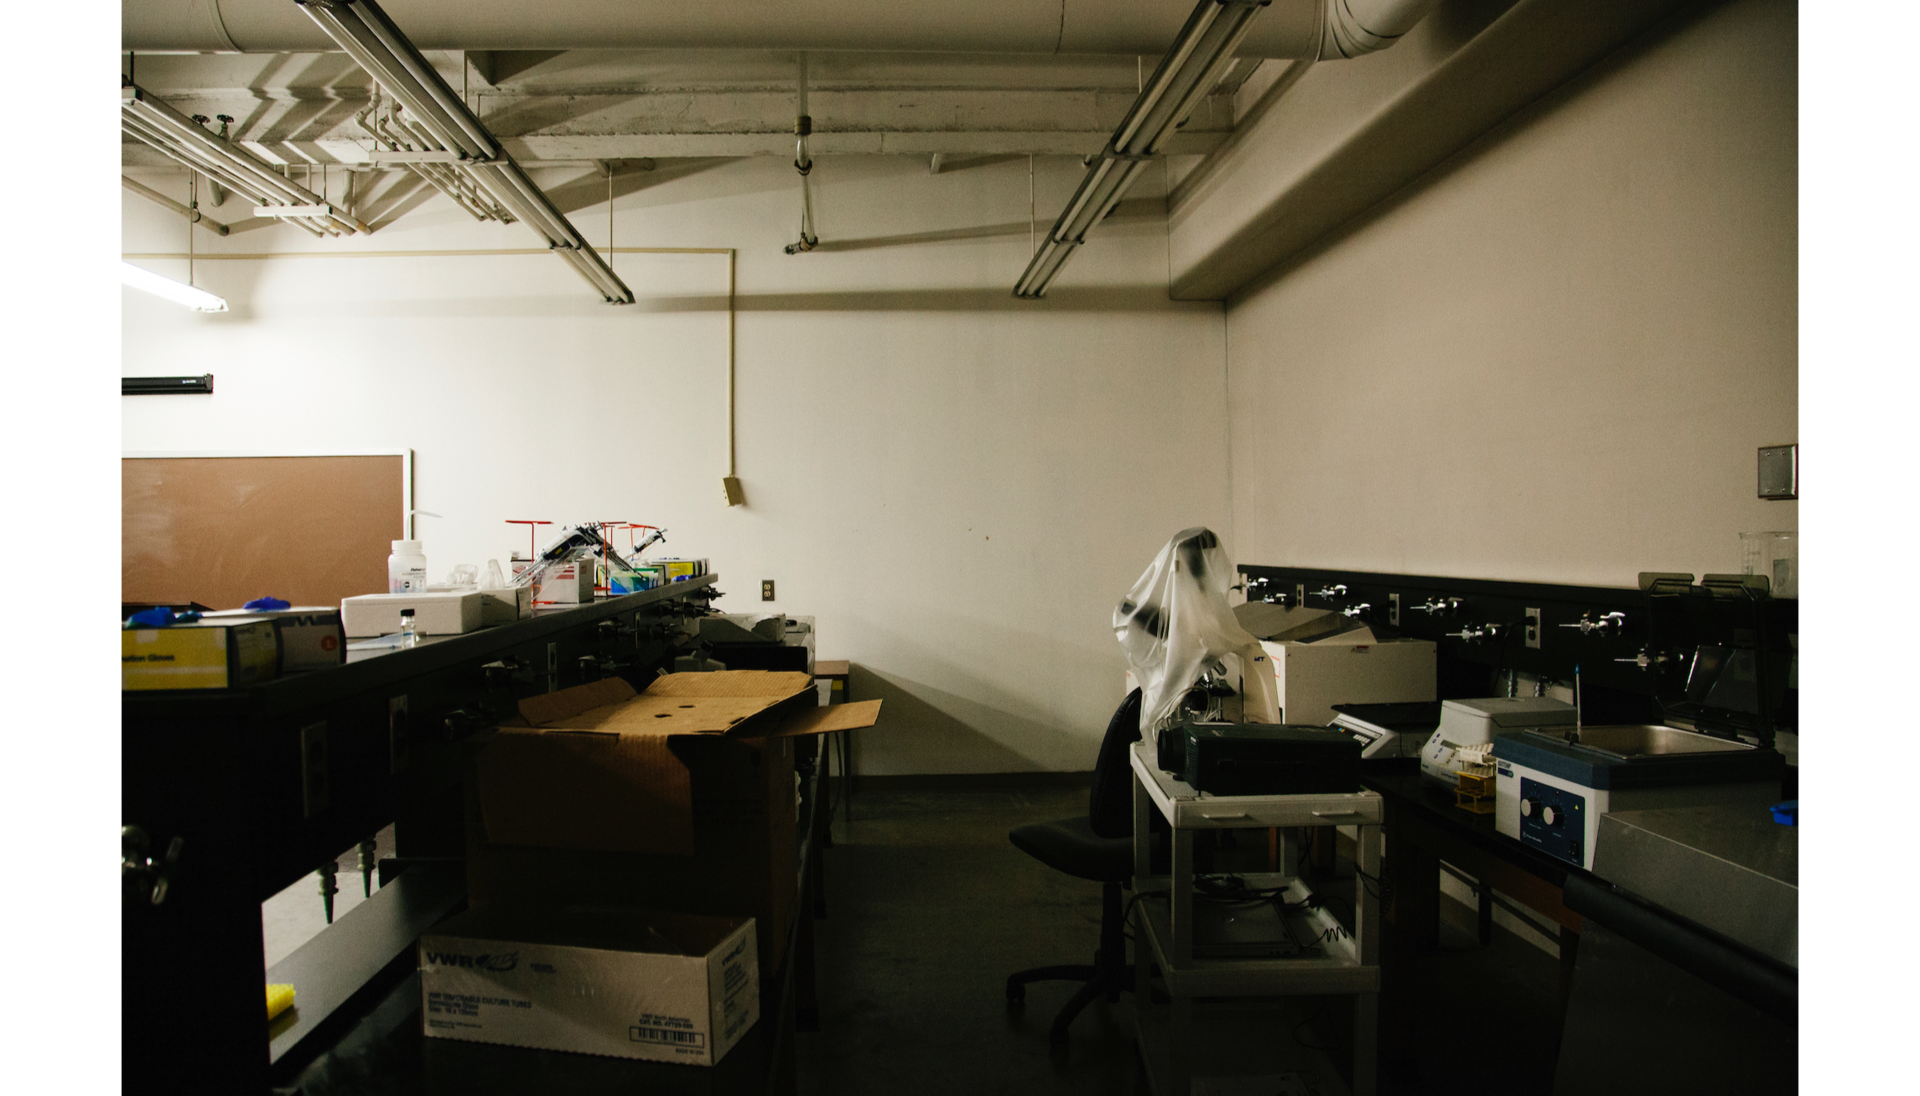 Inside Percival Stern Hall: lab equipment lies scattered throughout a dark and dreary laboratory